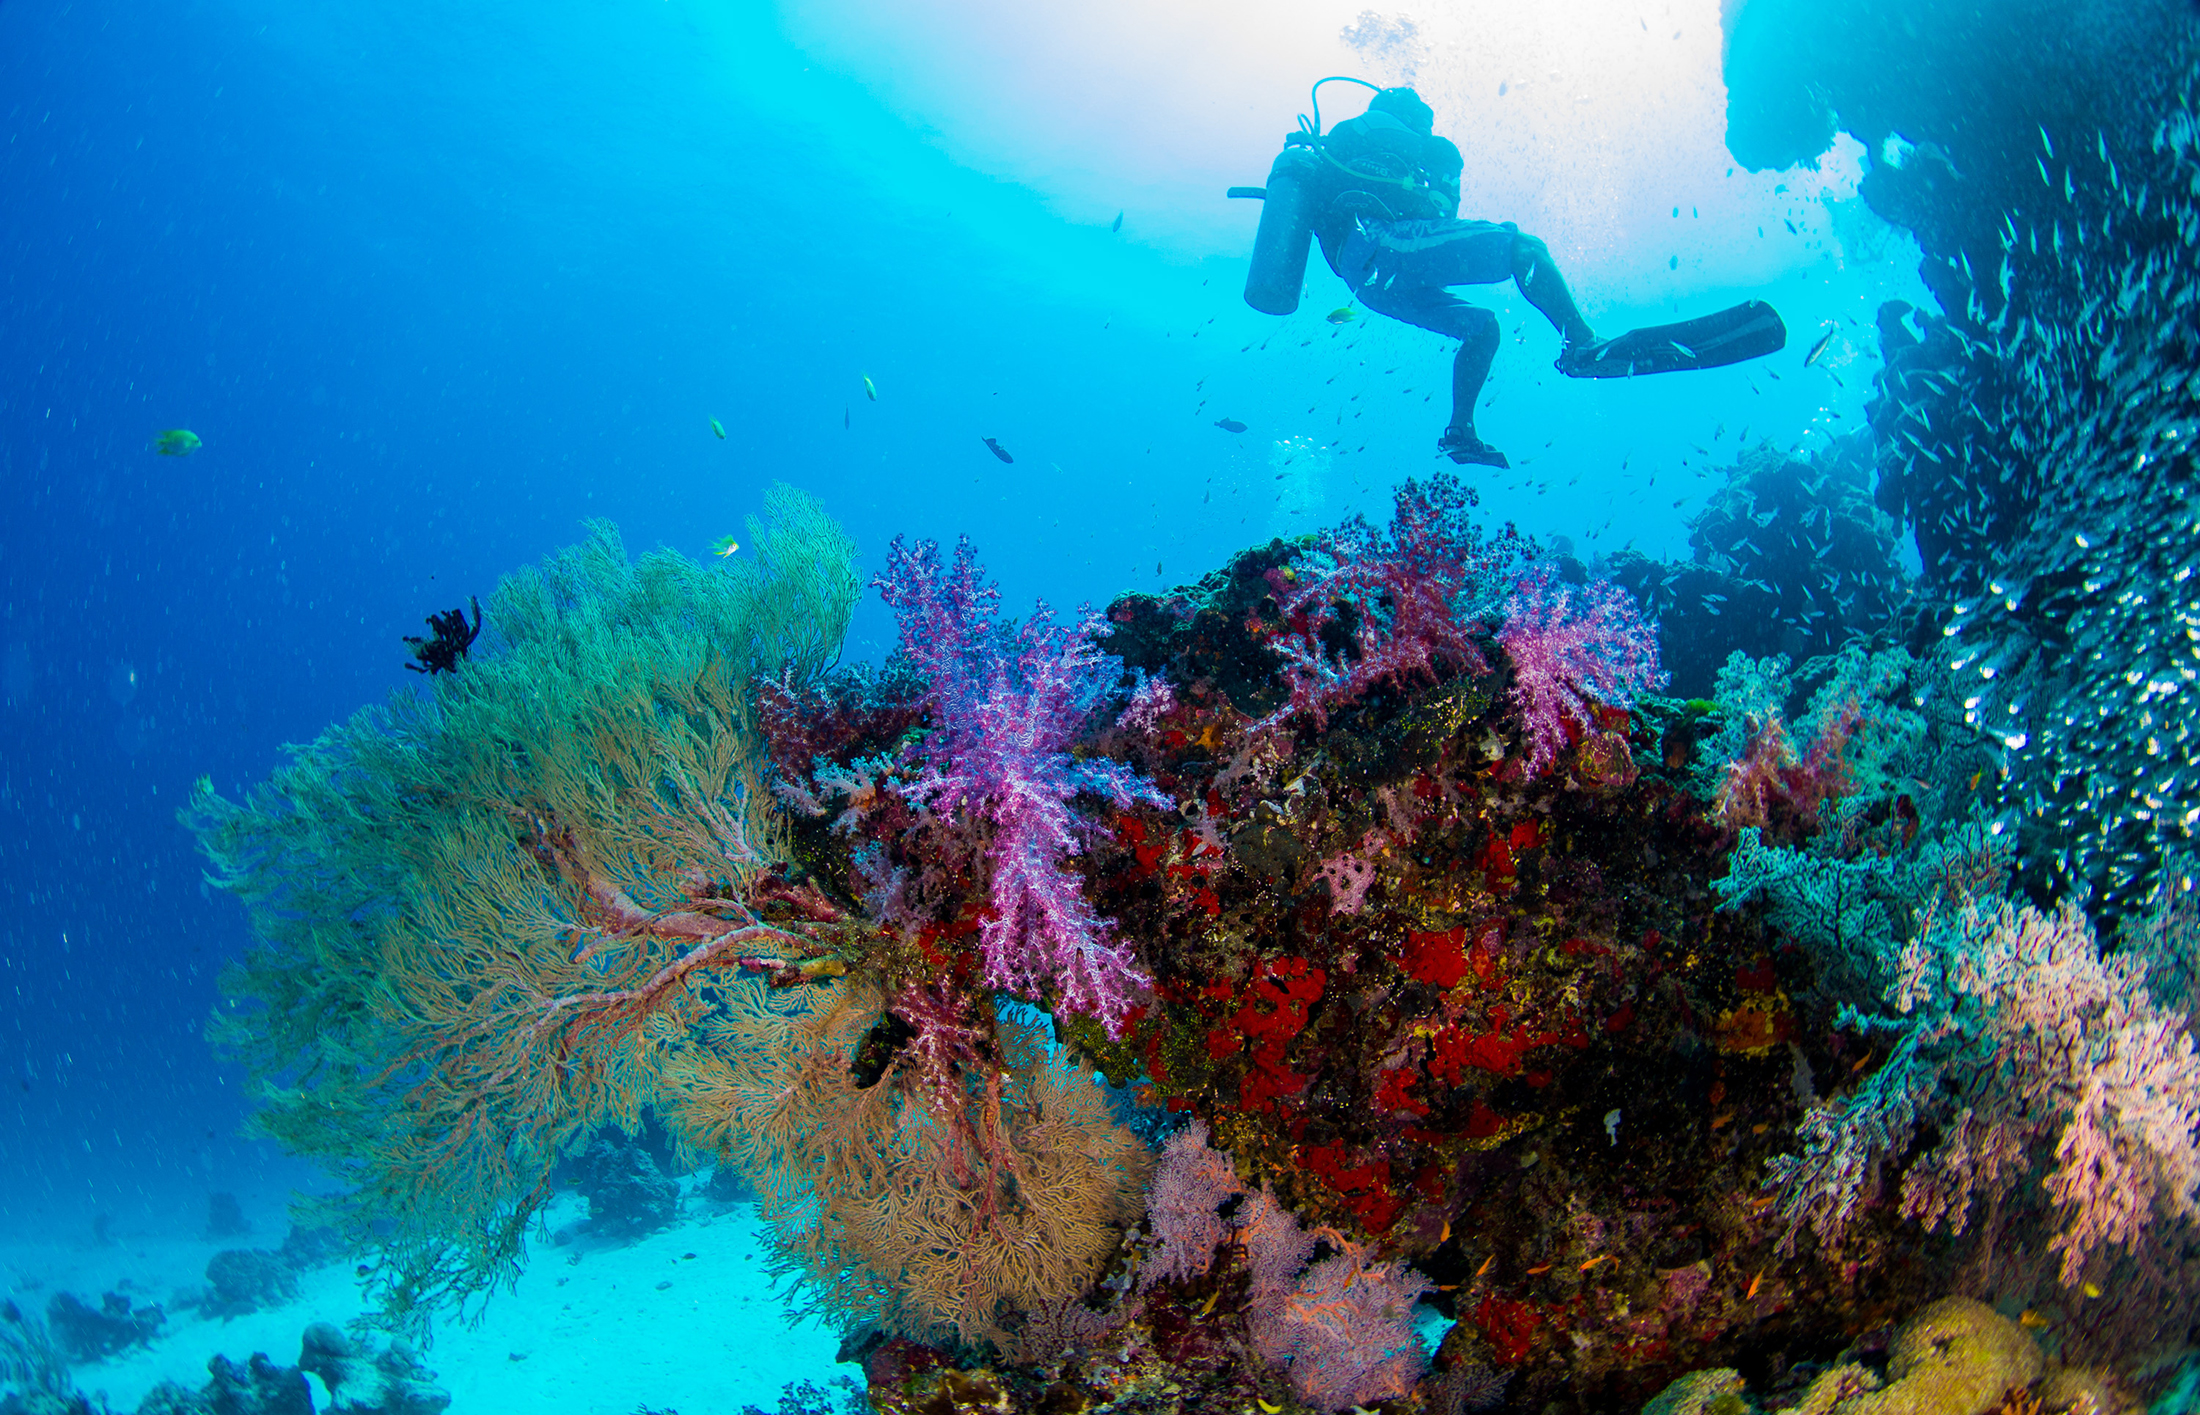 Undersea coral reef with fish  54255